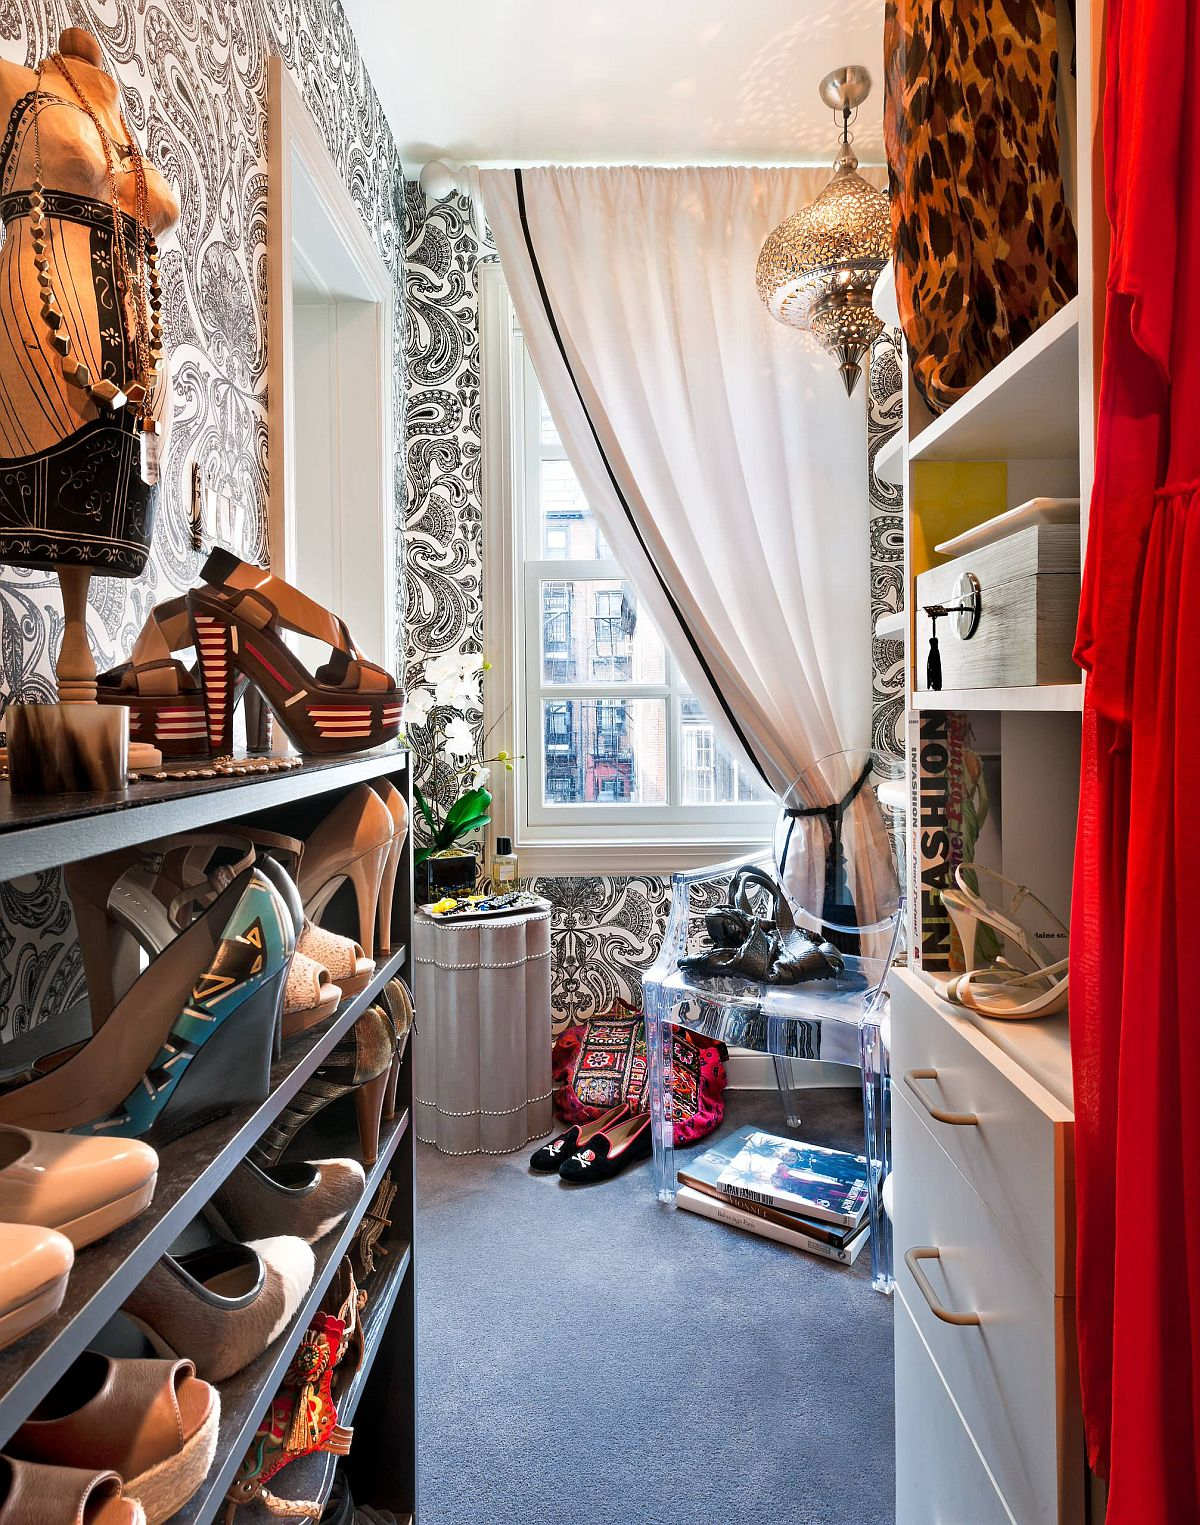 Repeating the drapery, wallpaper and other features used in the bedroom to create that perfect walk-in closet